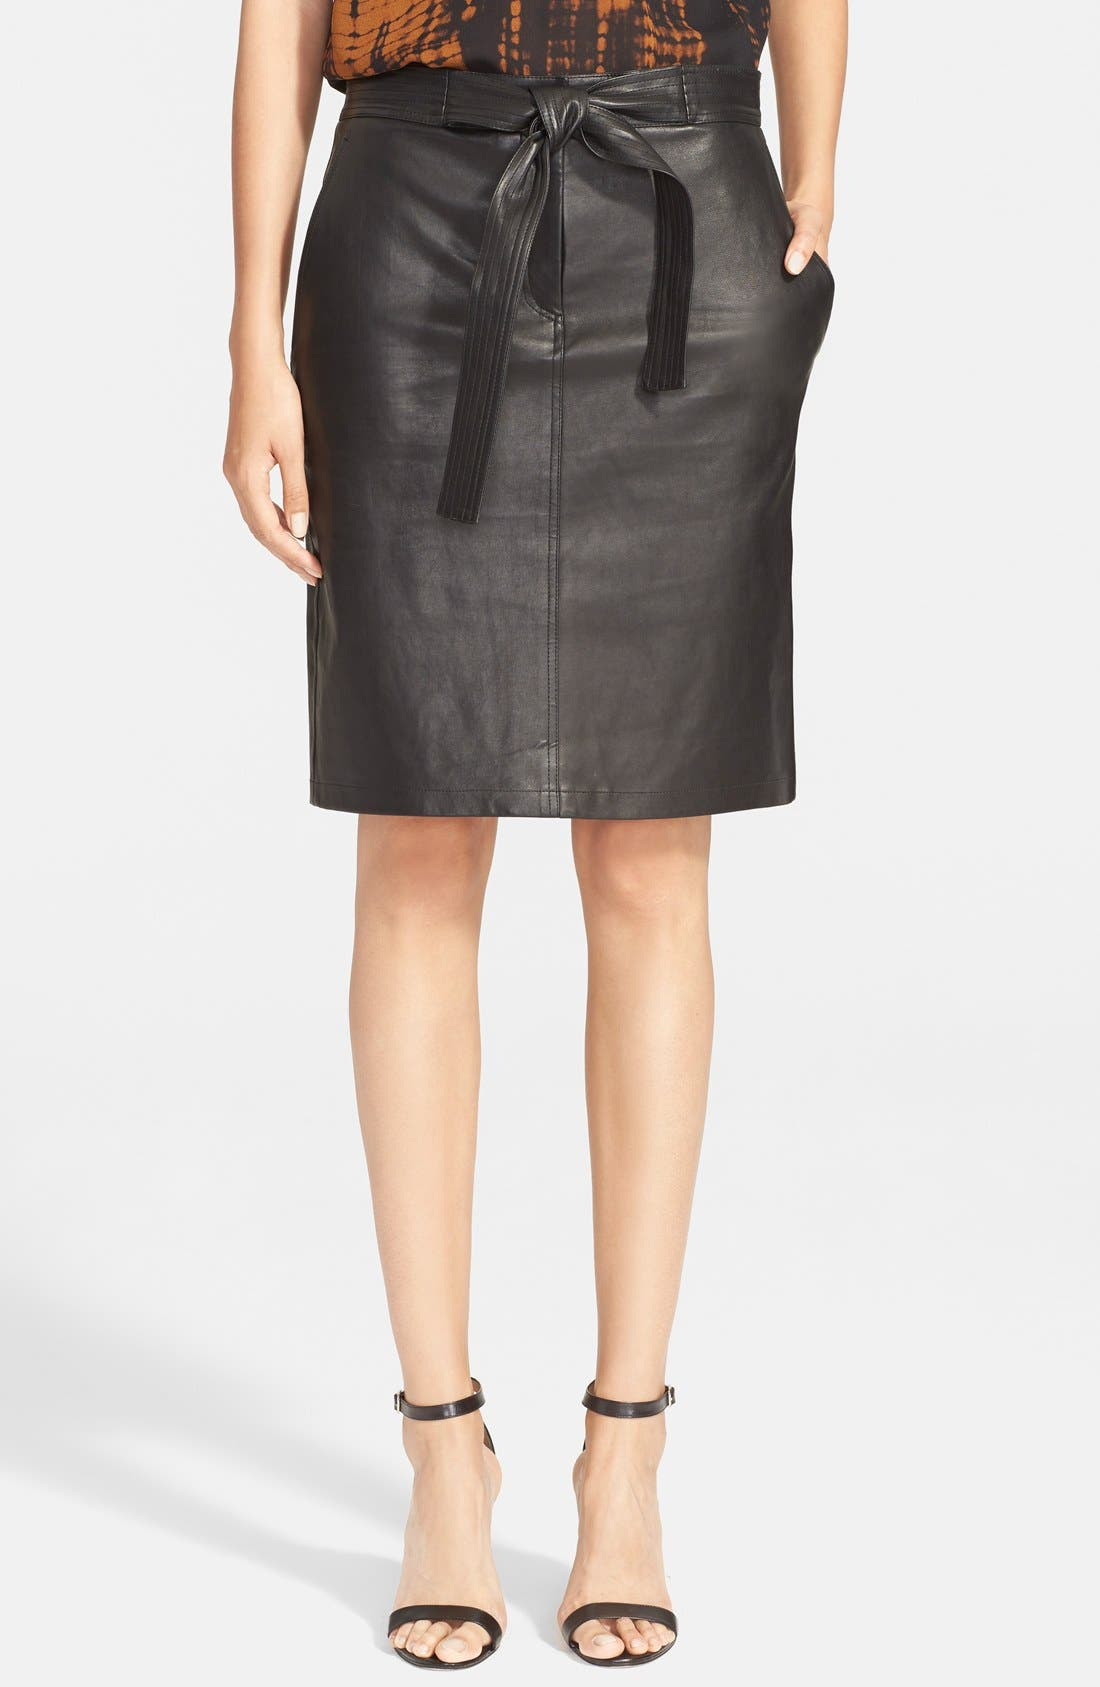 Alternate Image 1 Selected - A.L.C. 'Abigail' Leather Pencil Skirt